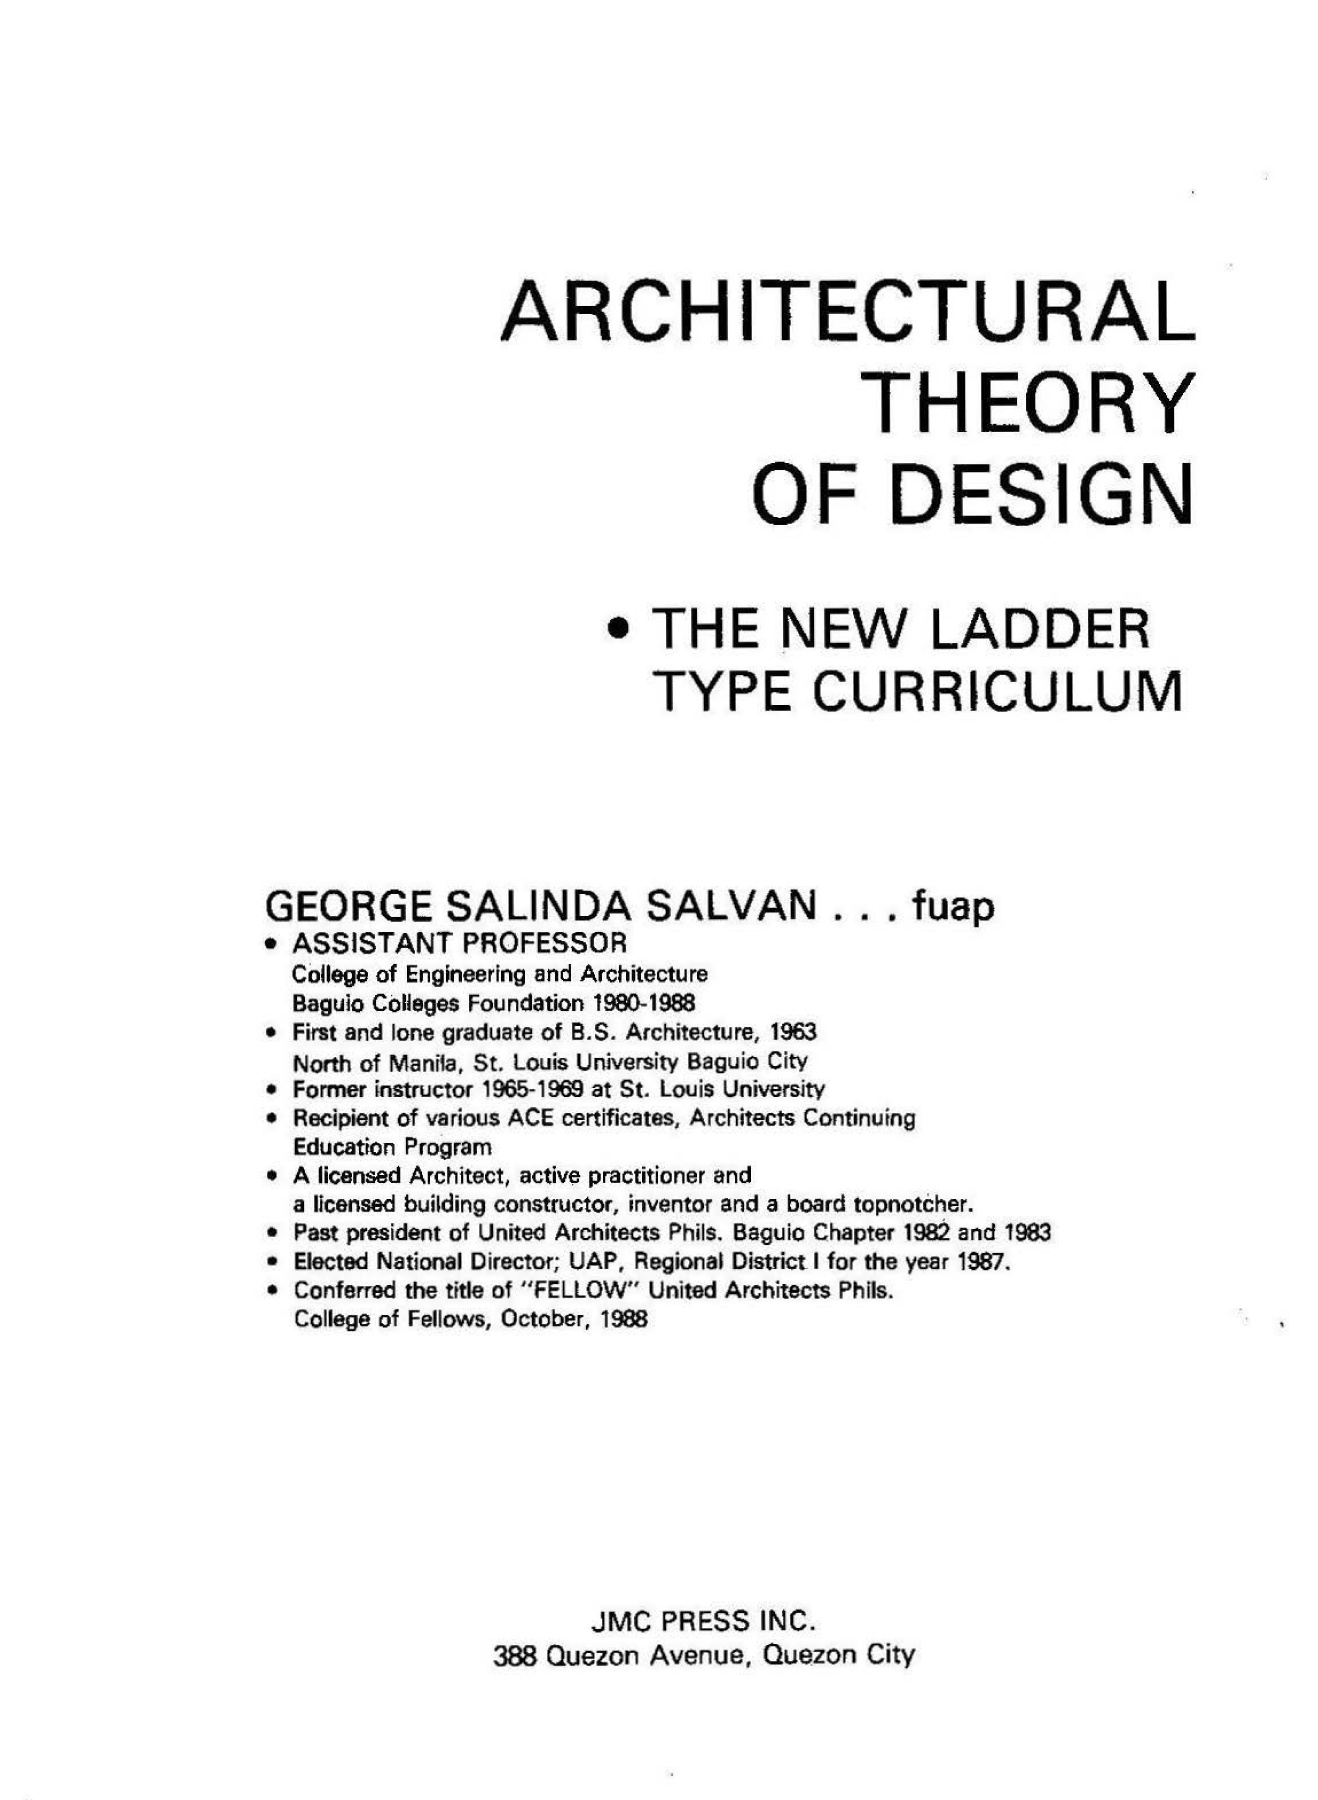 Architectural Theories Of Design By George Salvan Pdf